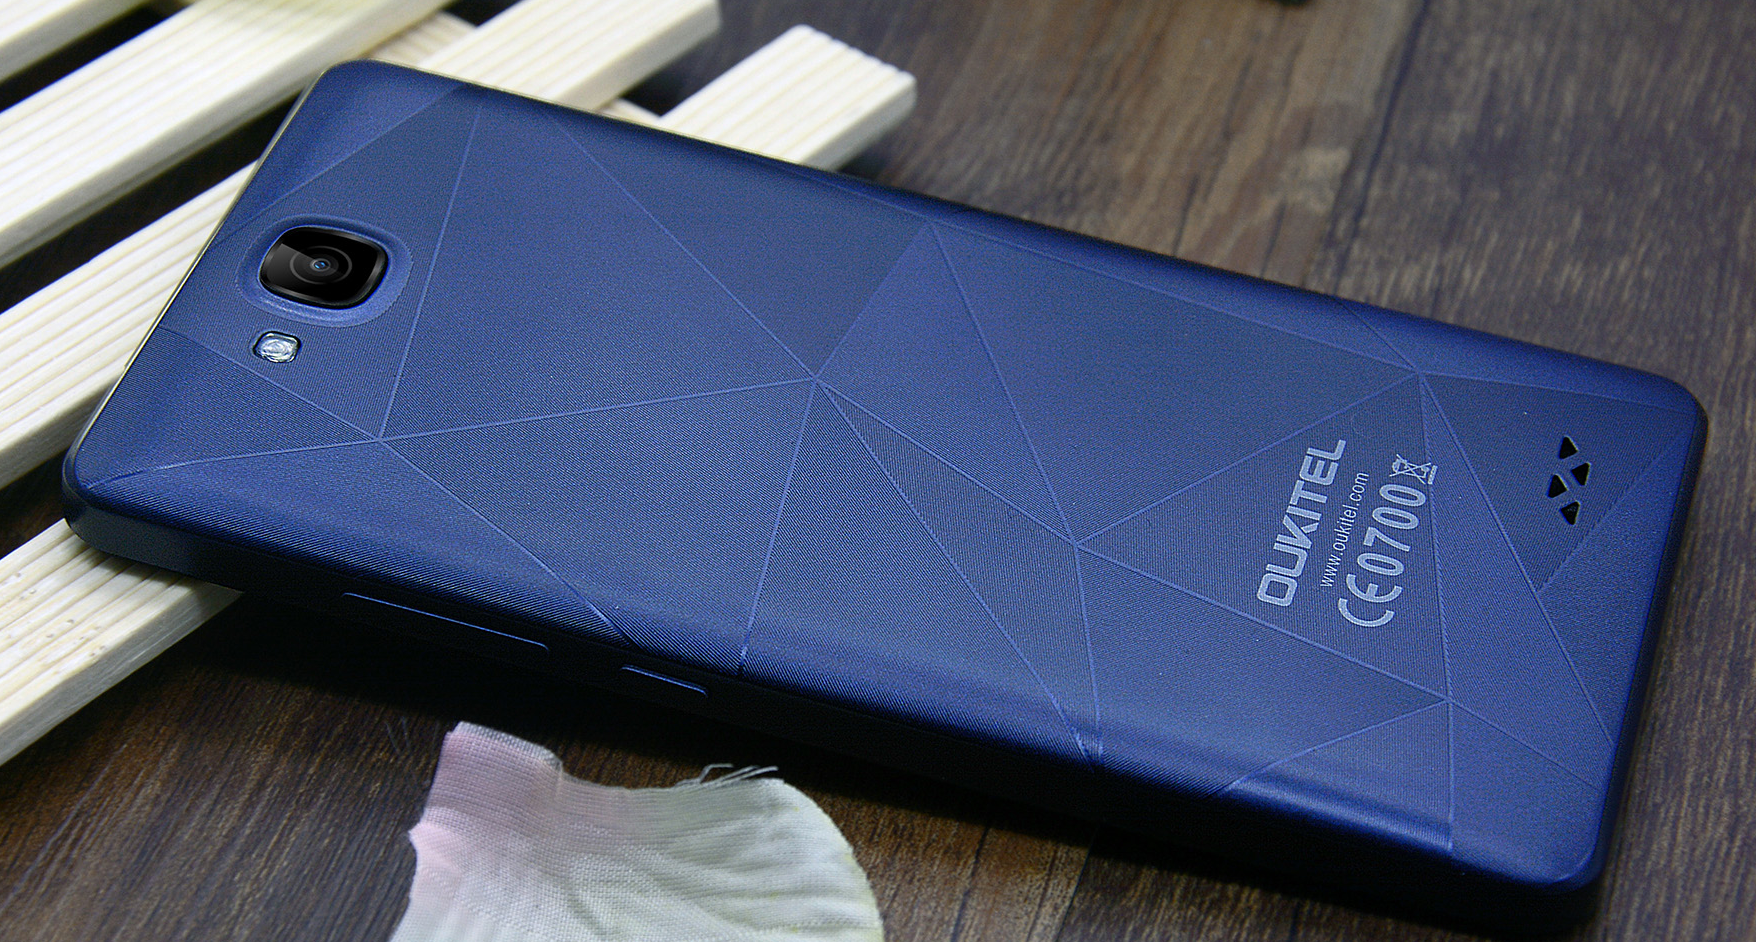 Oukitel C3; deep blue version shown from the back while lying on a wooden table.